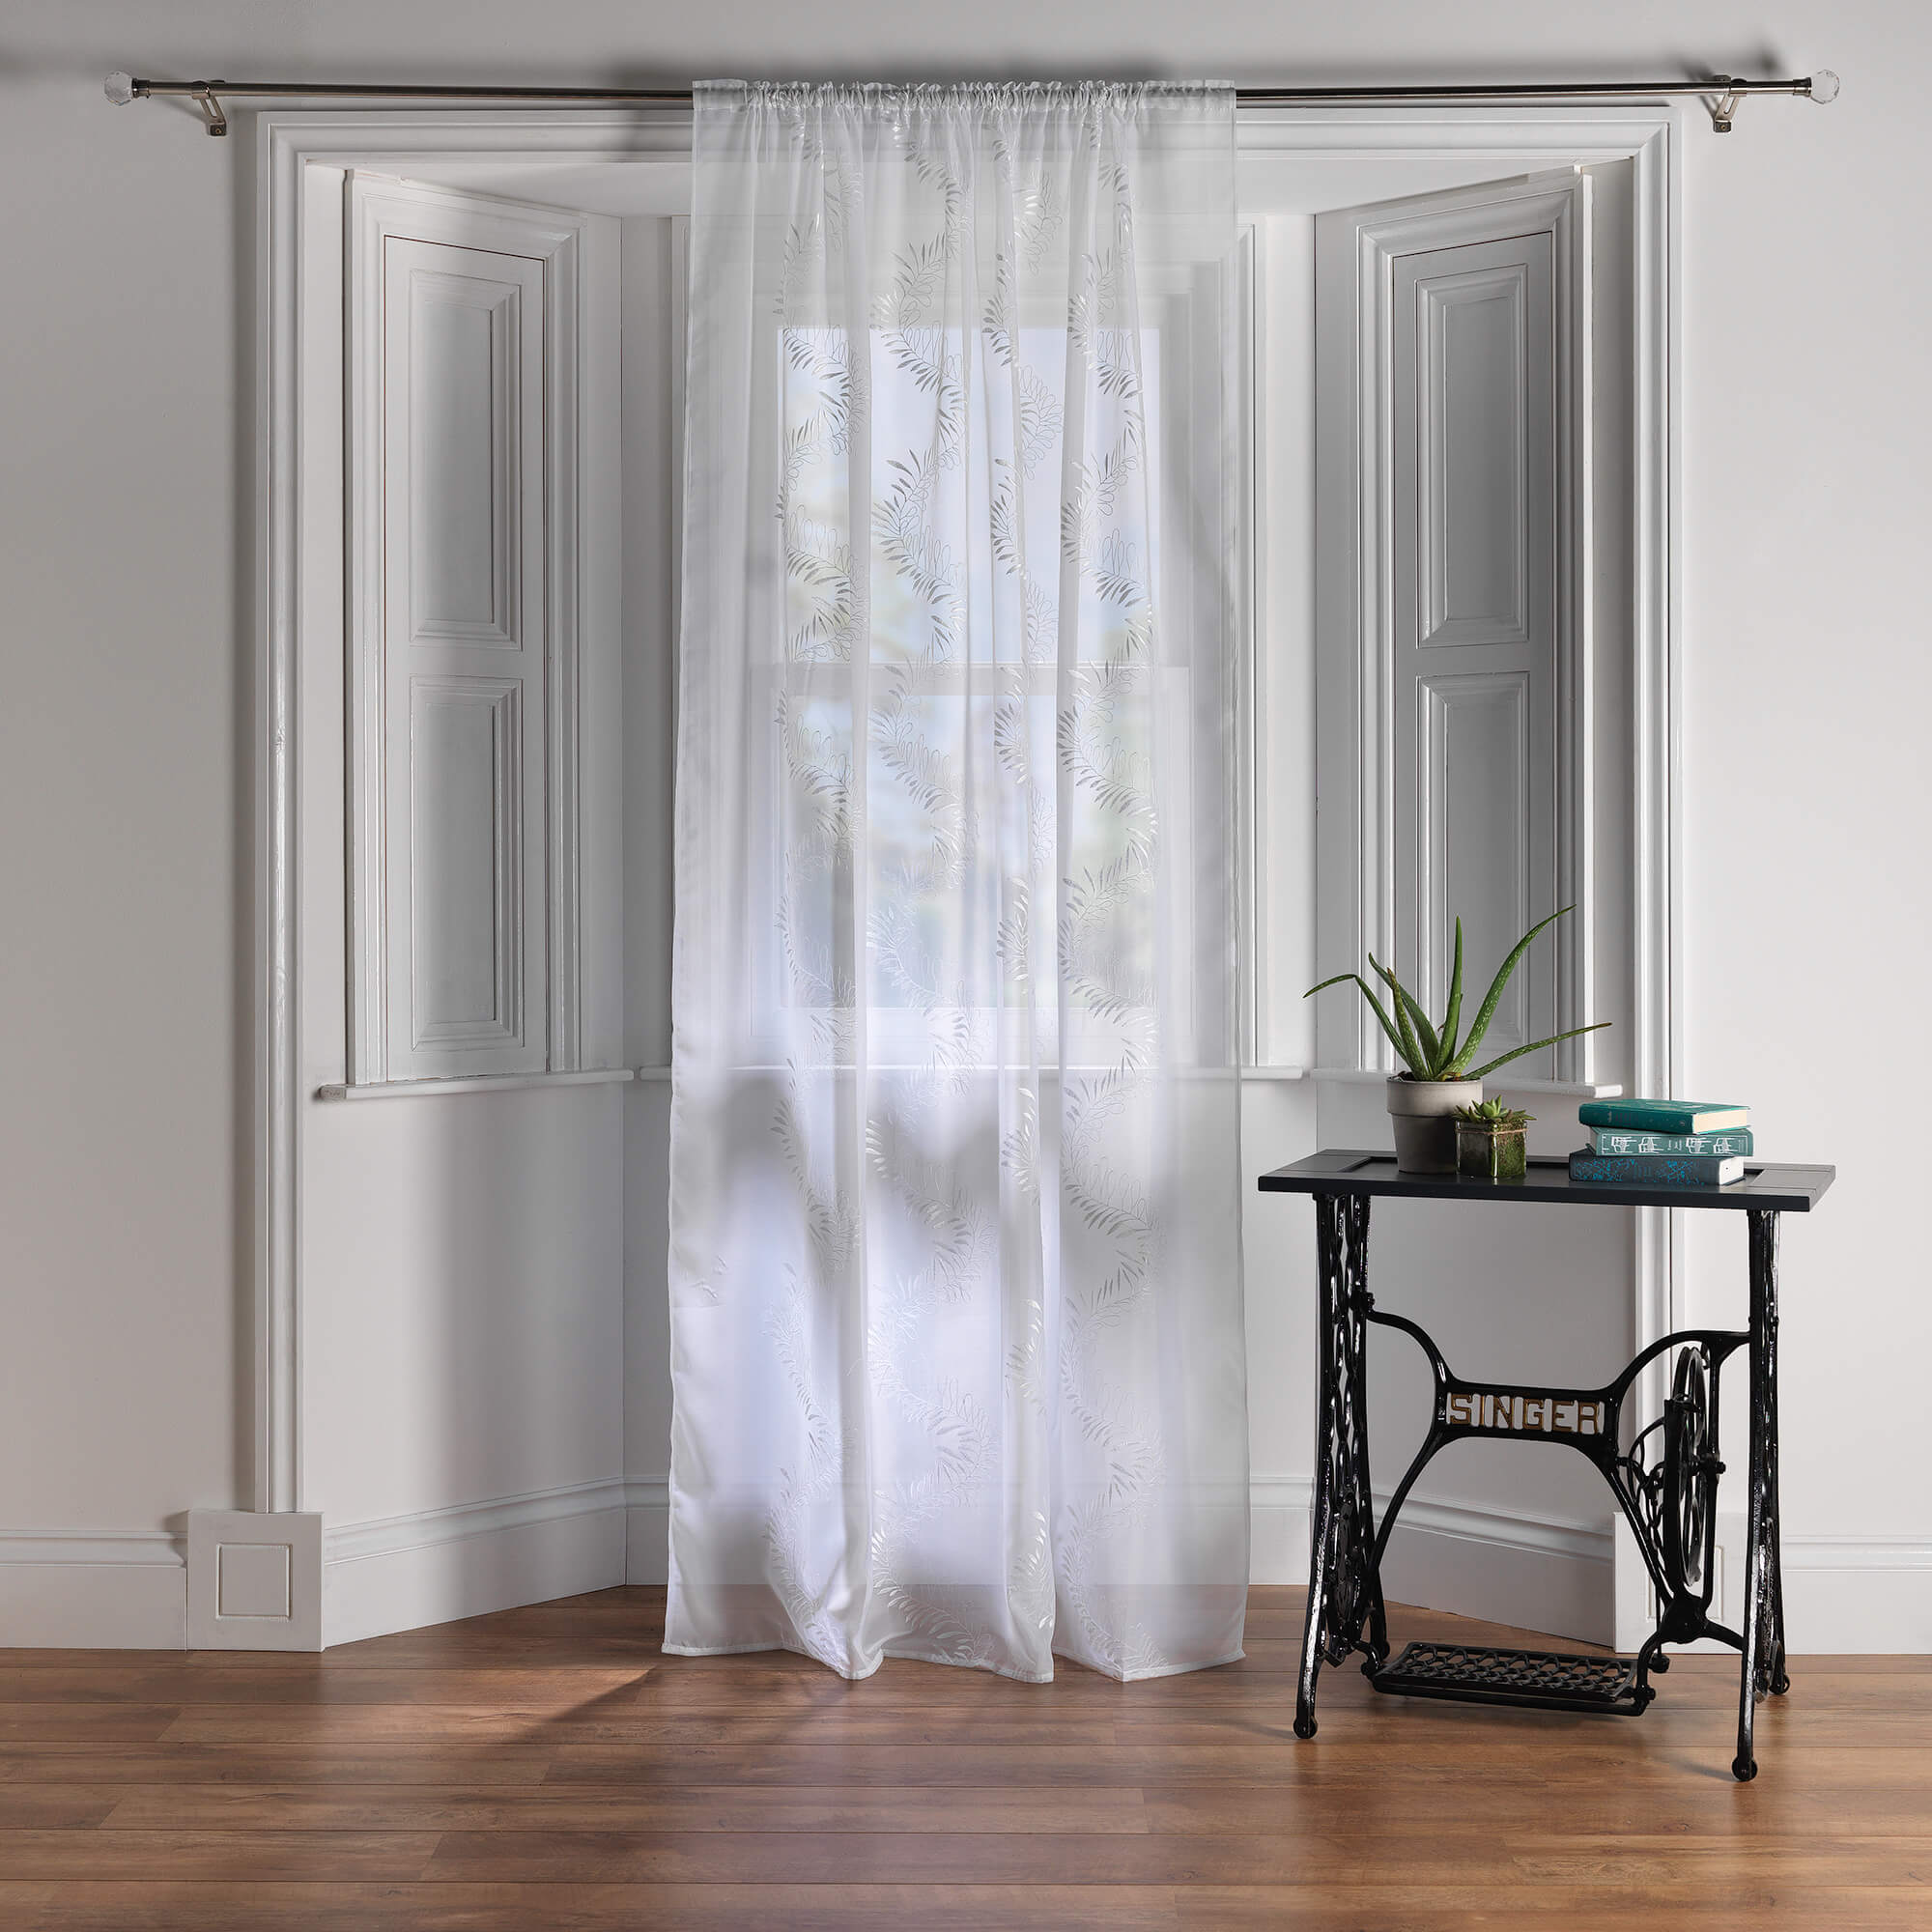 Net curtains for bay windows for Window net curtain